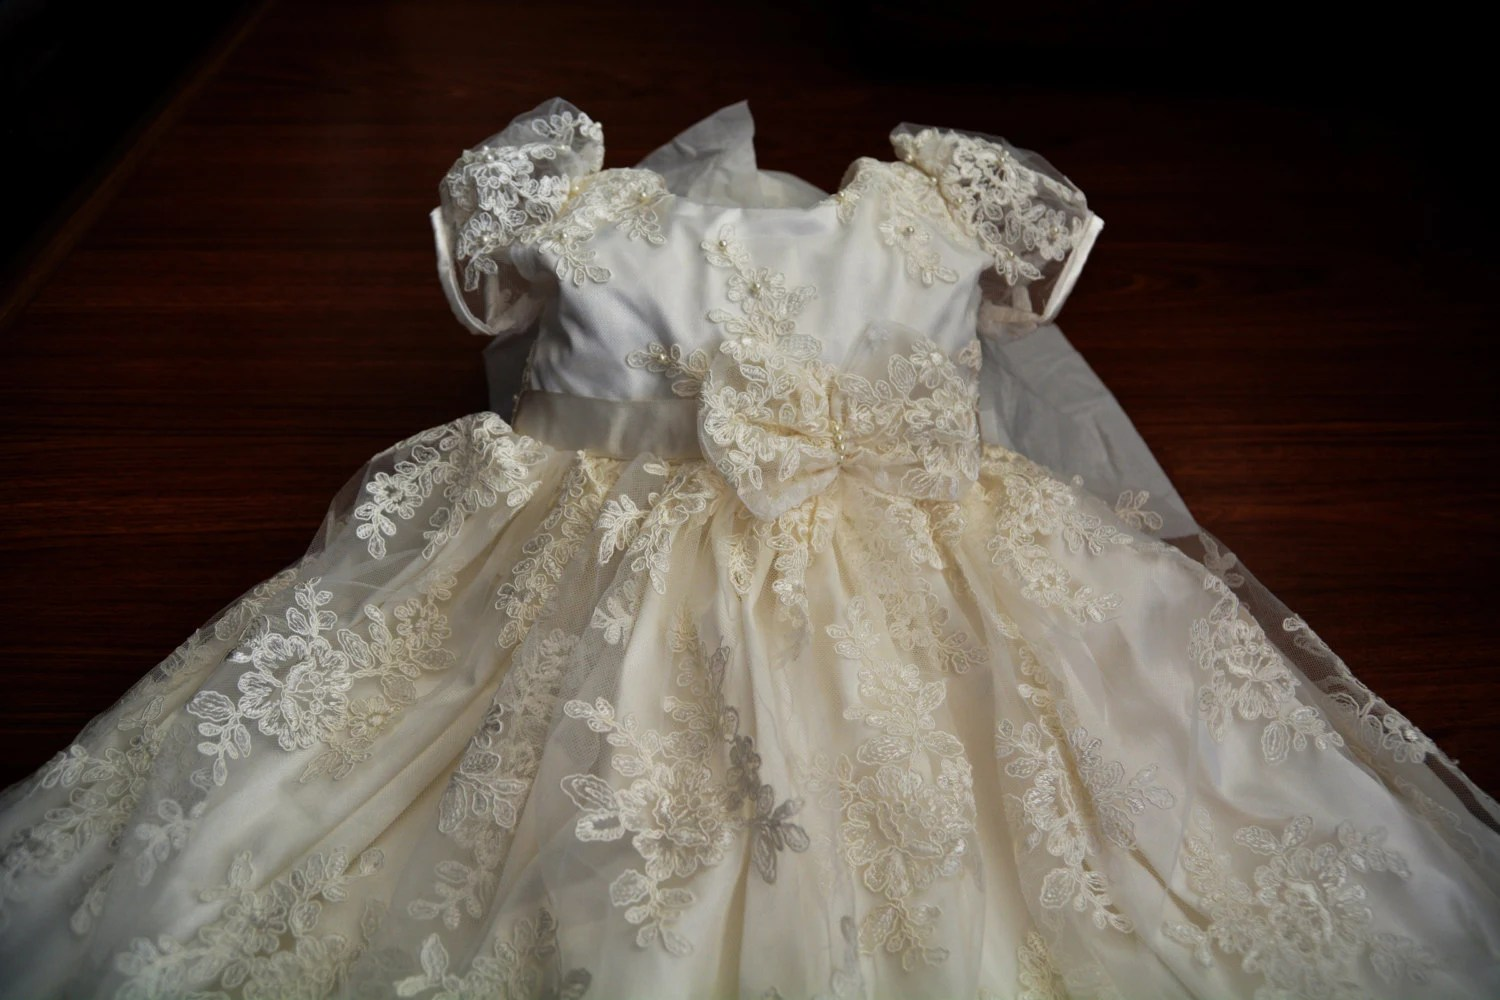 Baptism Gown Beaded Lace Christening Gown Baptism Dress Set